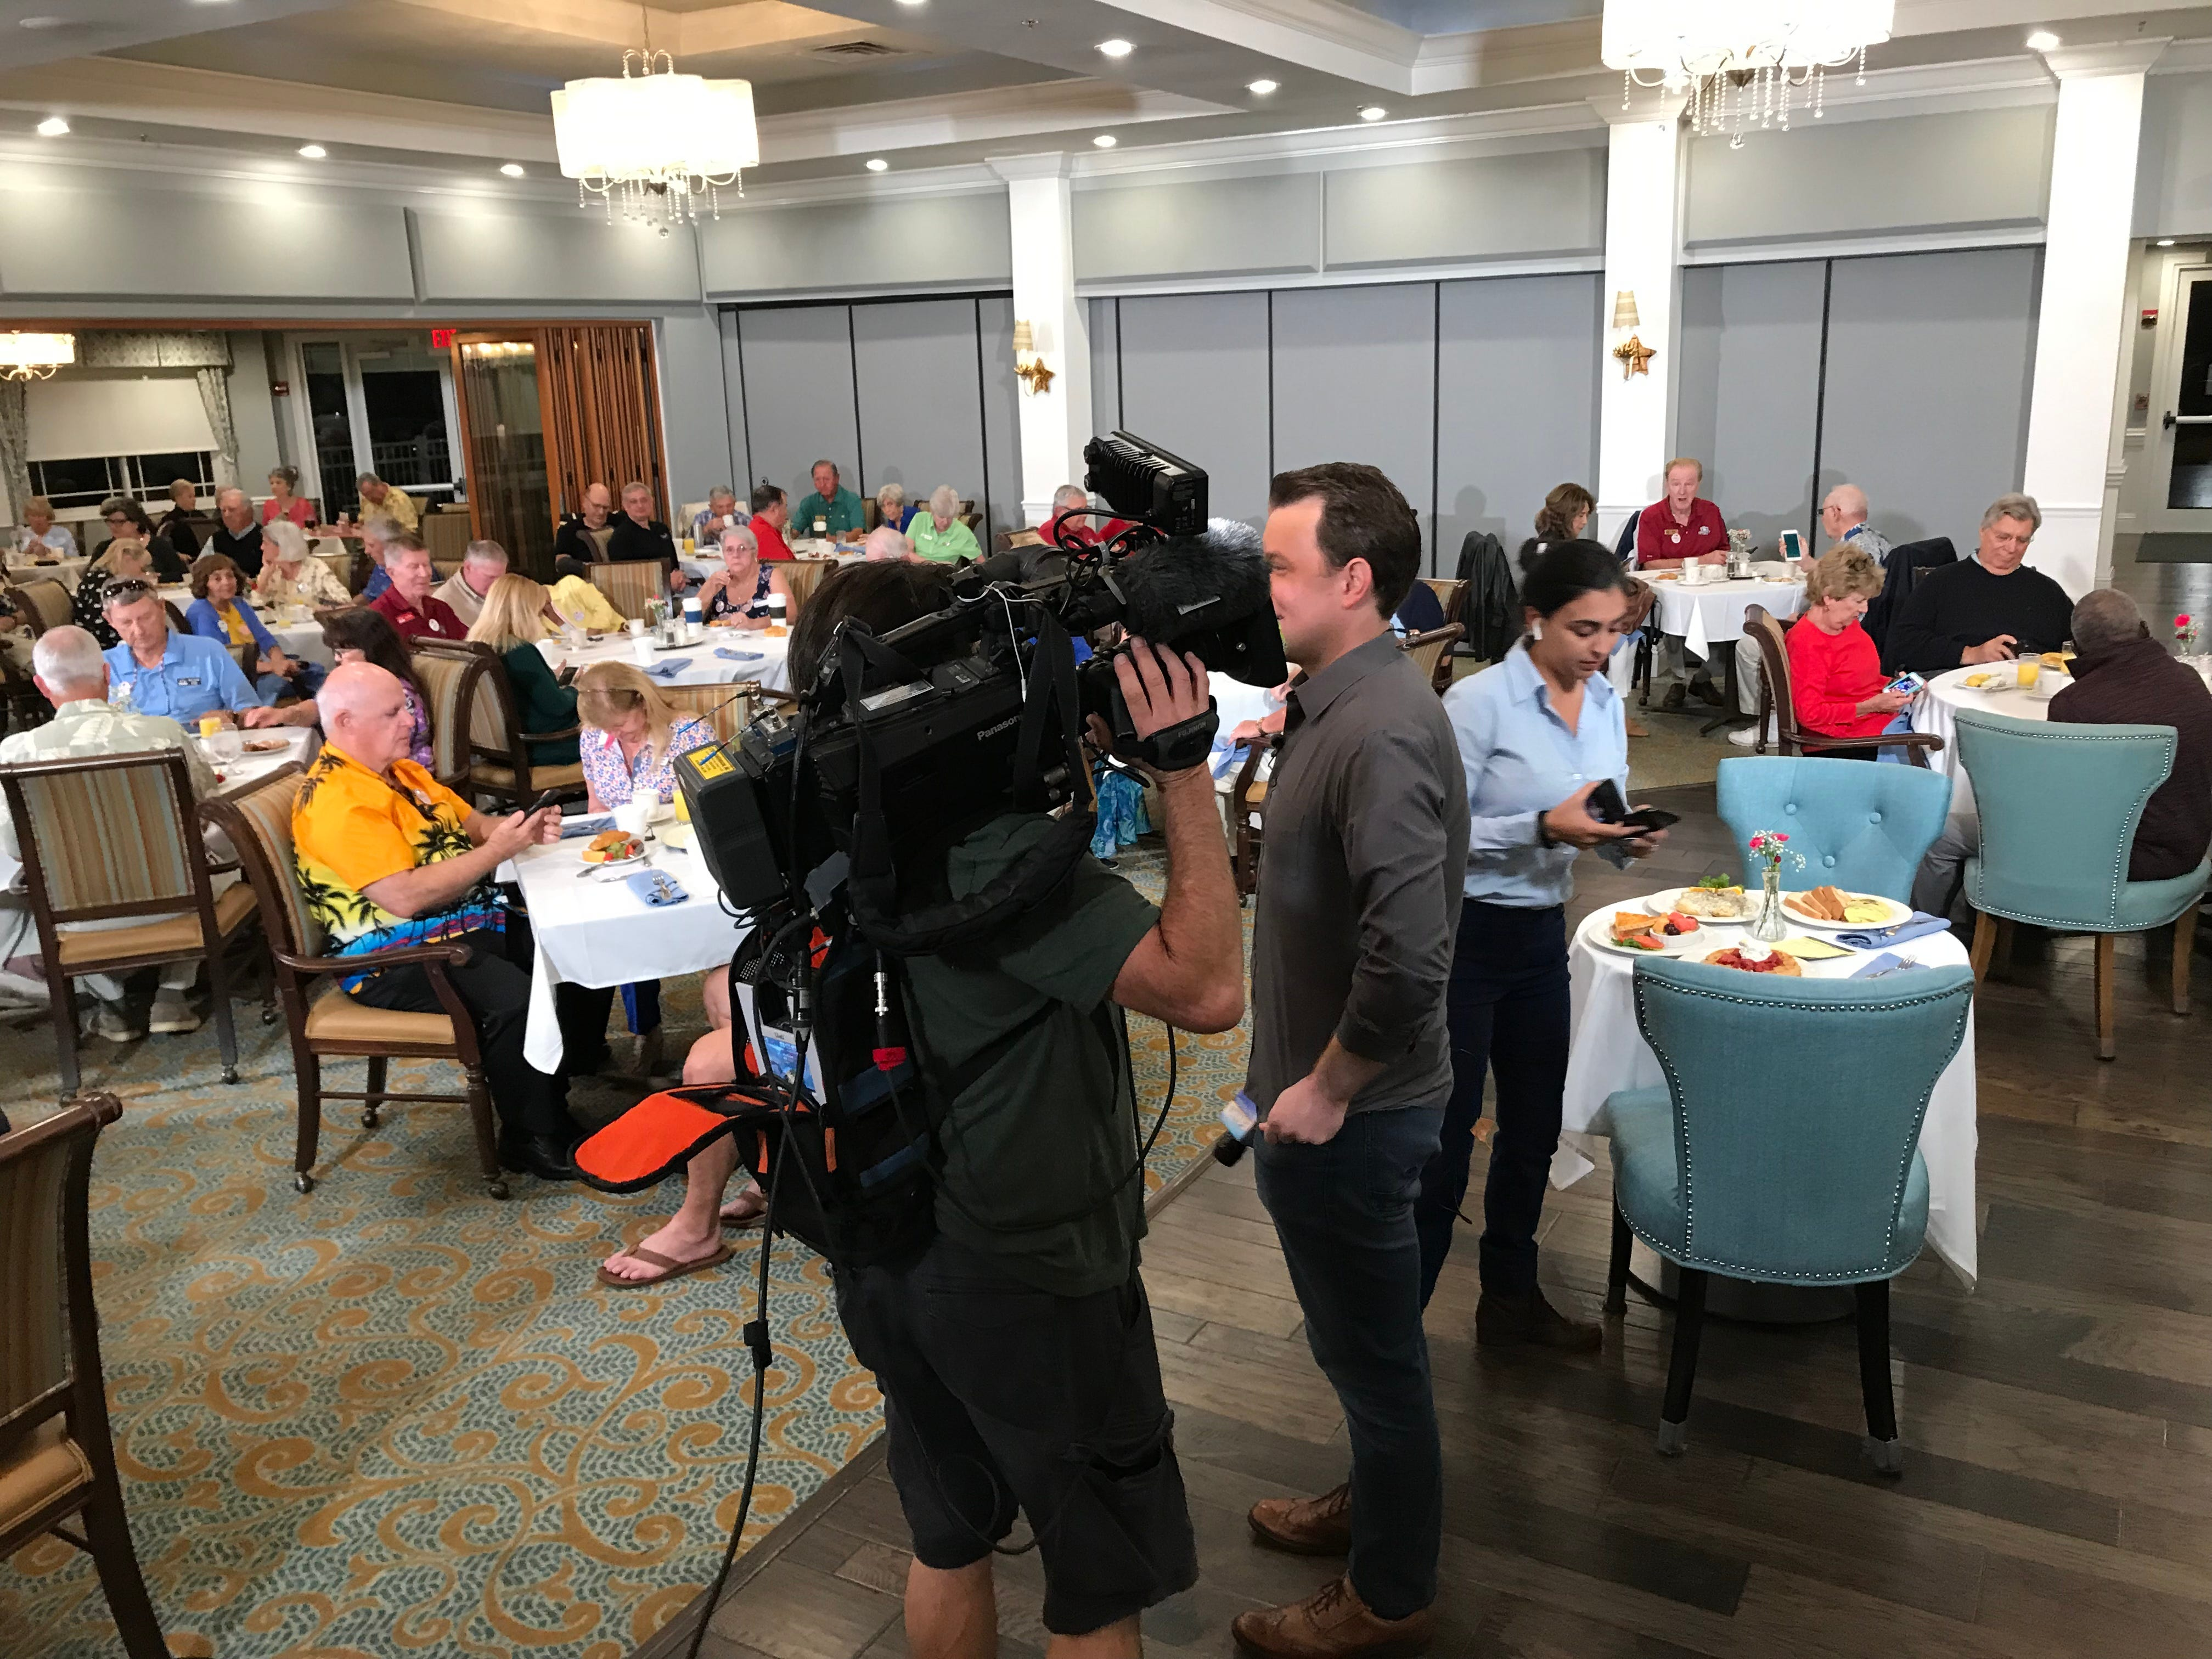 """""""Fox & Friends"""" correspondent Todd Piro joined patrons at the Indian River Colony Club in Viera to hear their reactions to President Trump's State of the Union address."""